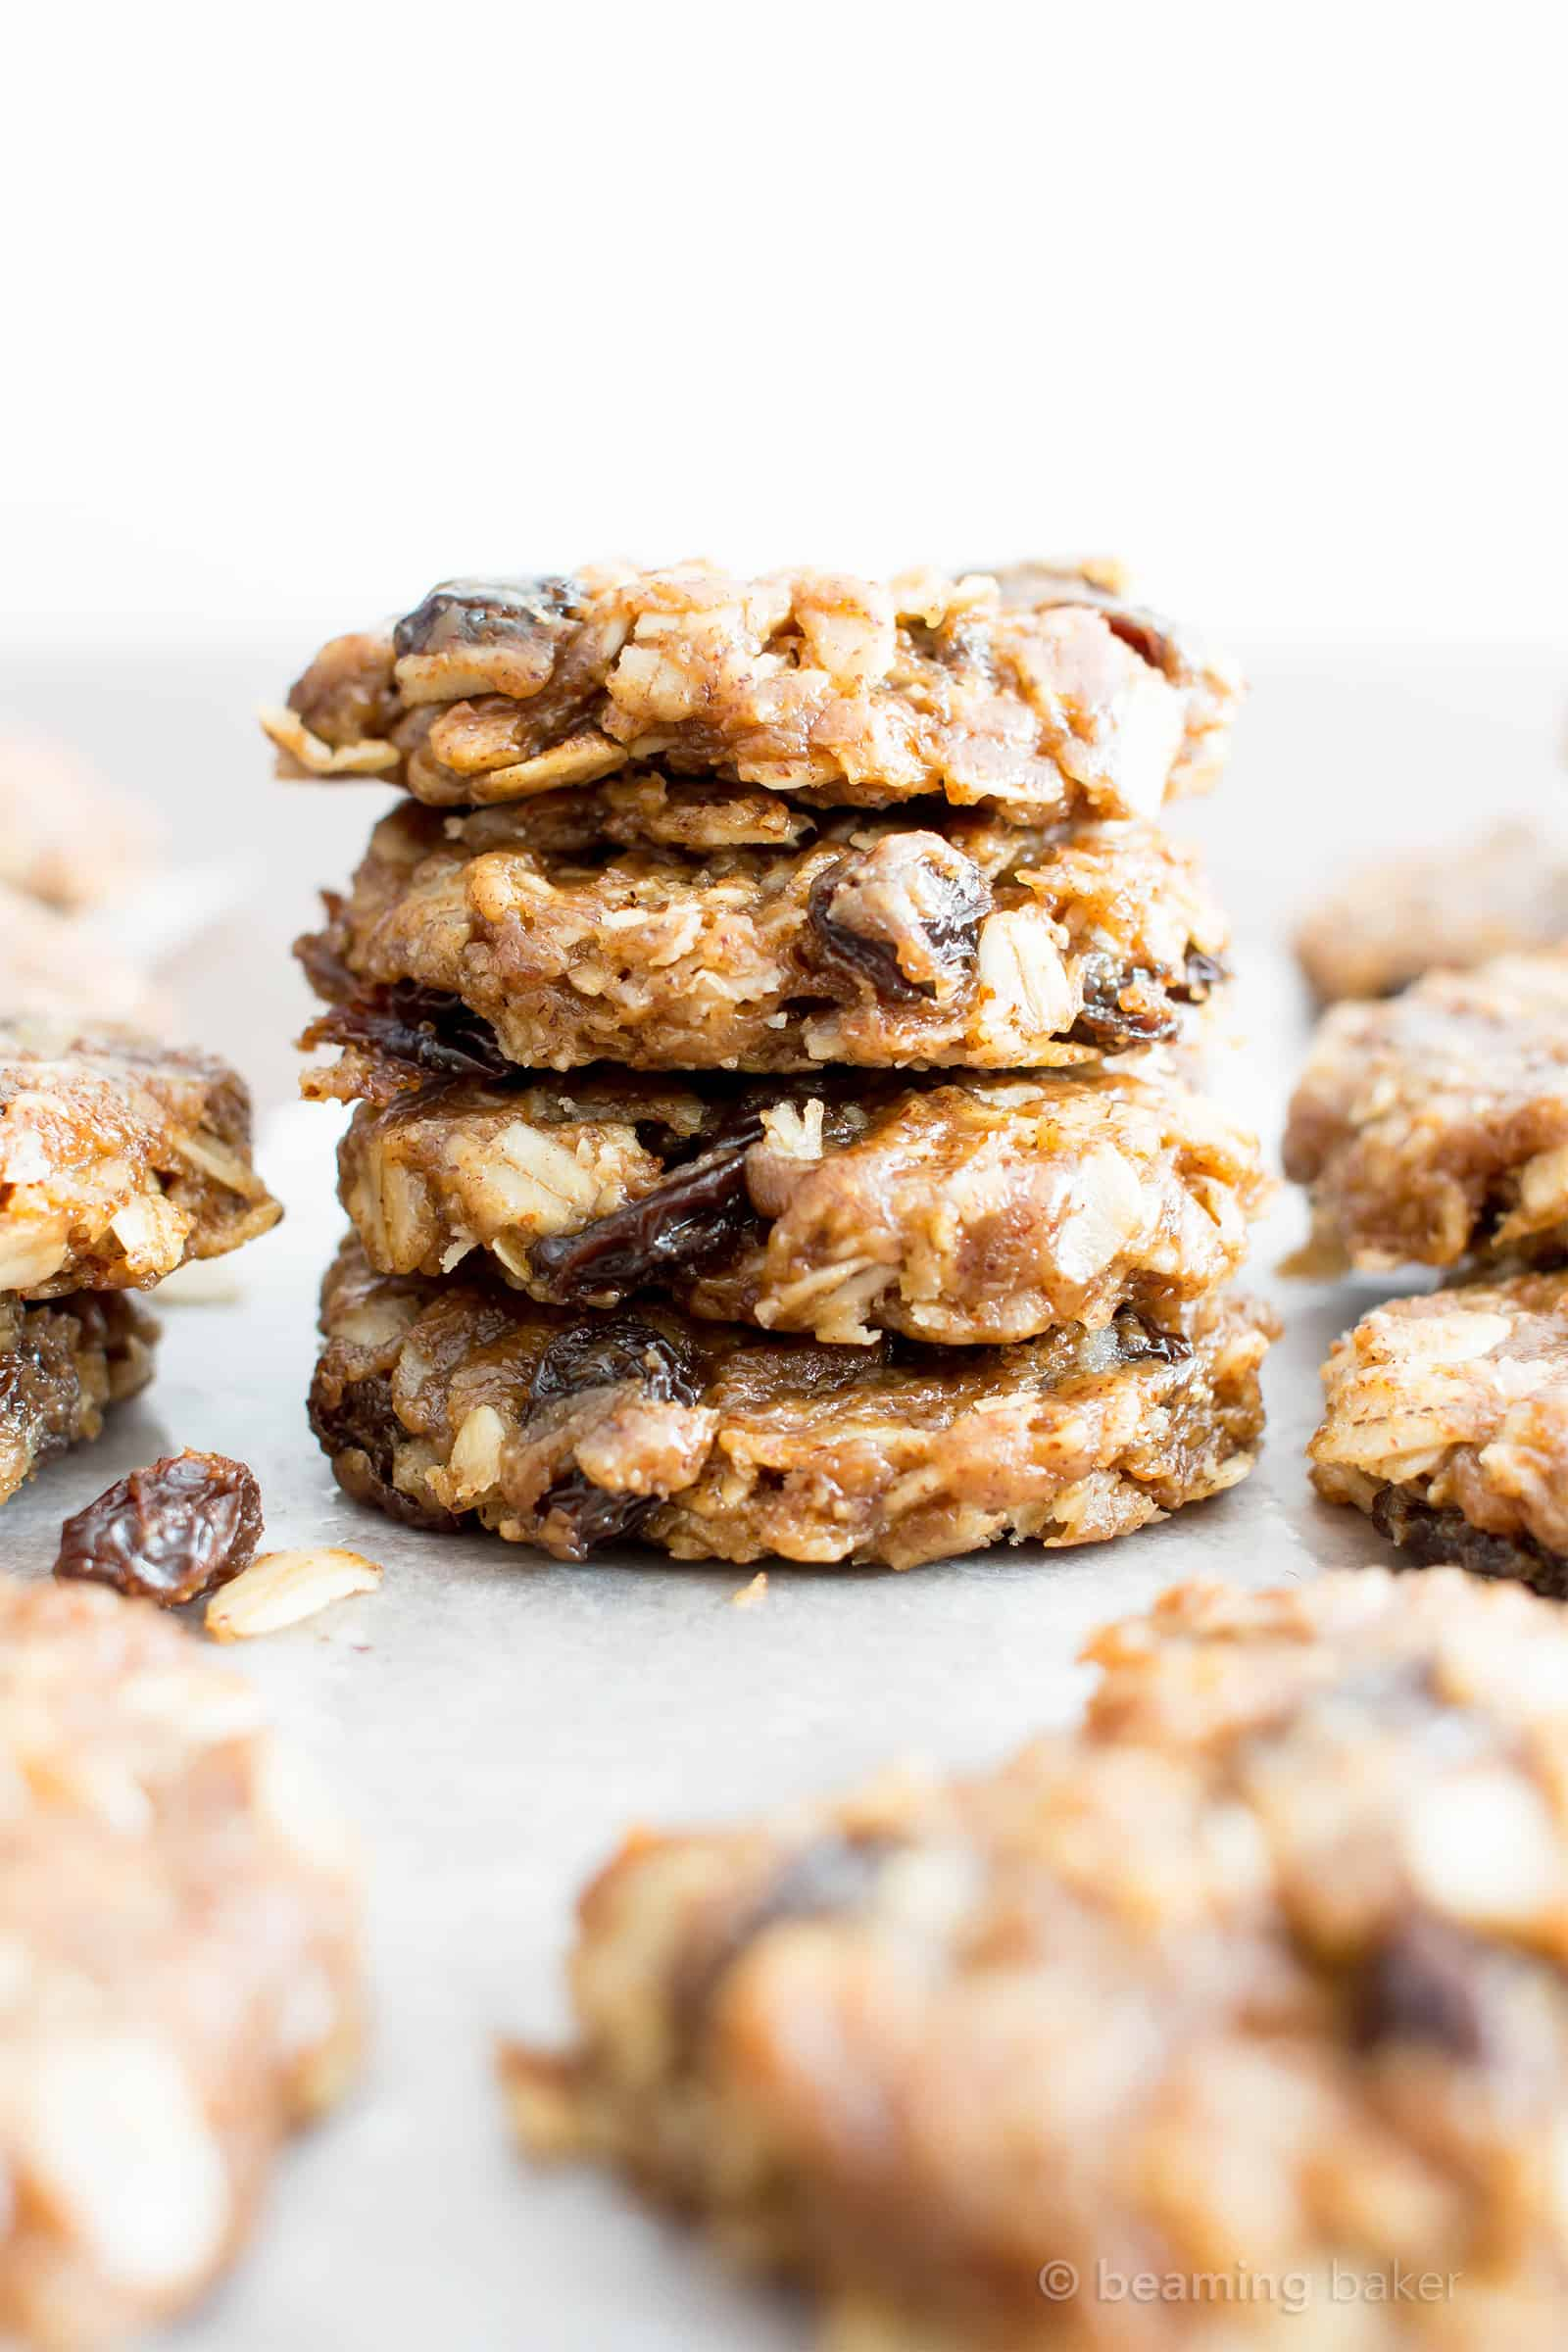 4 Ingredient No Bake Chewy Oatmeal Raisin Cookies (V, GF): an easy recipe for delightfully chewy no bake cookies bursting with raisins and cinnamon flavor! #Vegan #GlutenFree #DairyFree #Cookies #NoBake #Dessert | Recipe on BeamingBaker.com